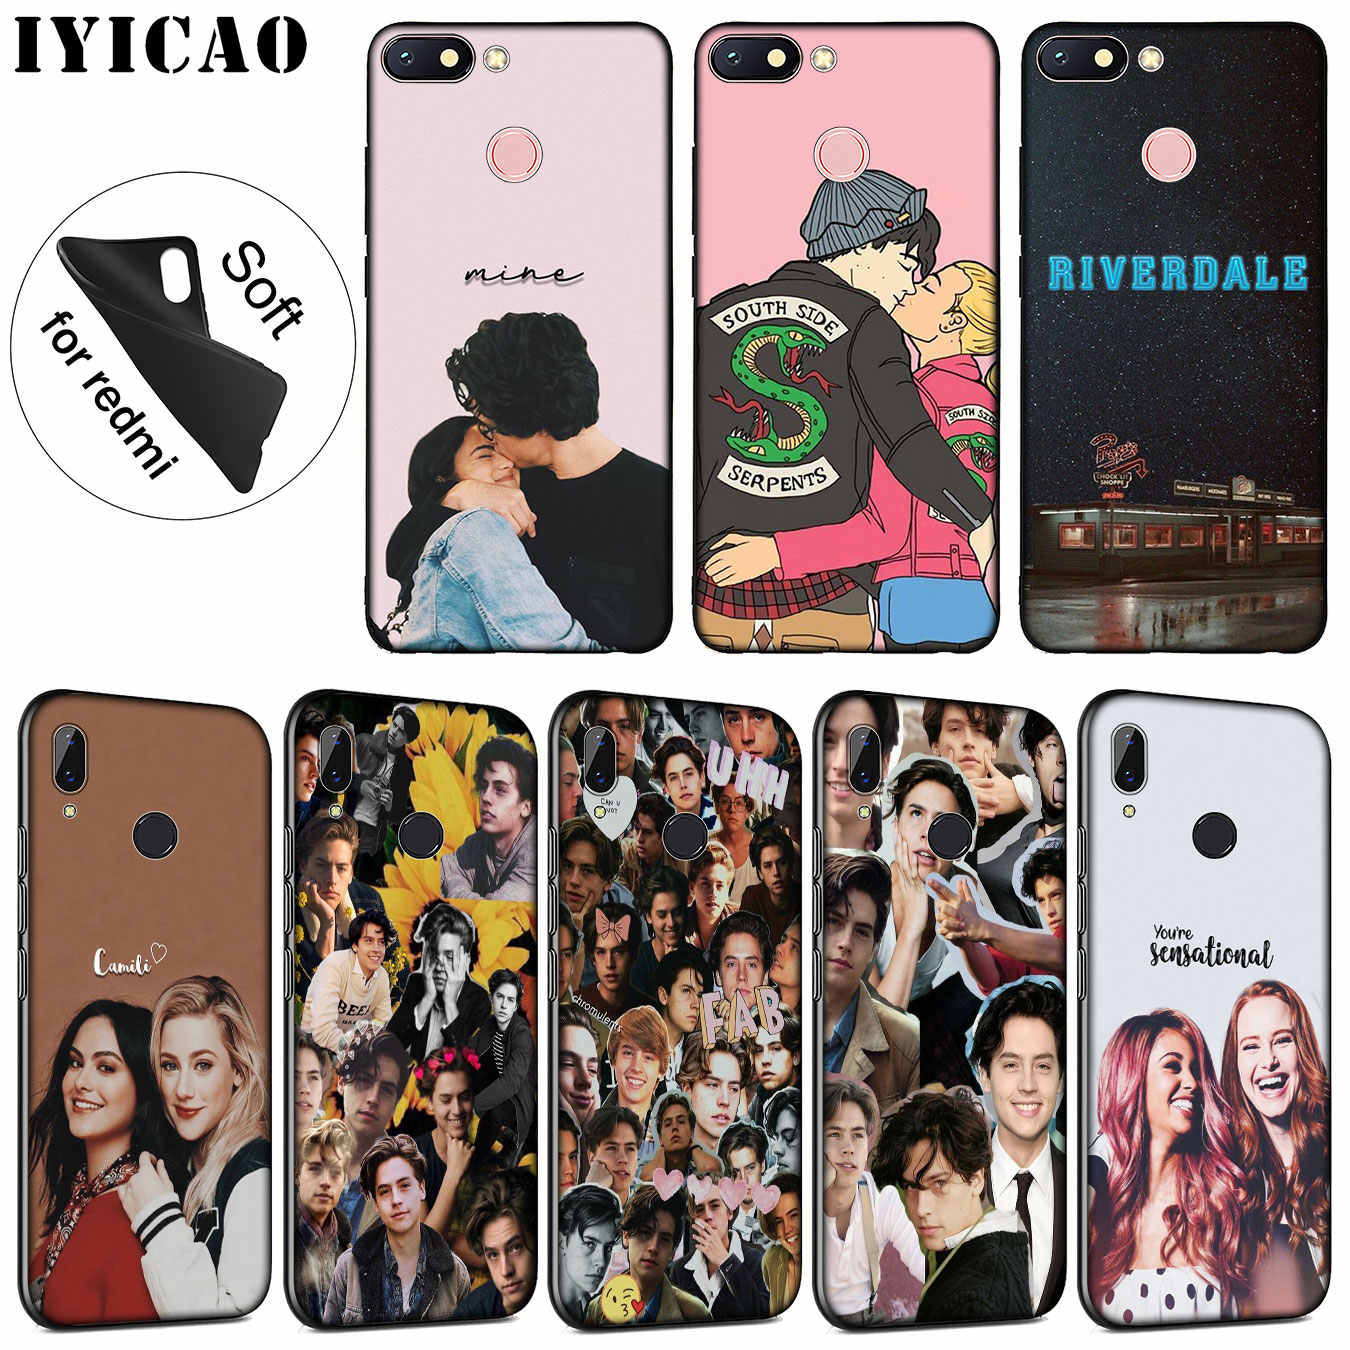 IYICAO riverdale choni Soft Silicone Phone Case for Xiaomi Redmi K20 7A 6A 5A S2 4X 4A GO Note 7 5 Plus 6 Pro Black TPU Cover